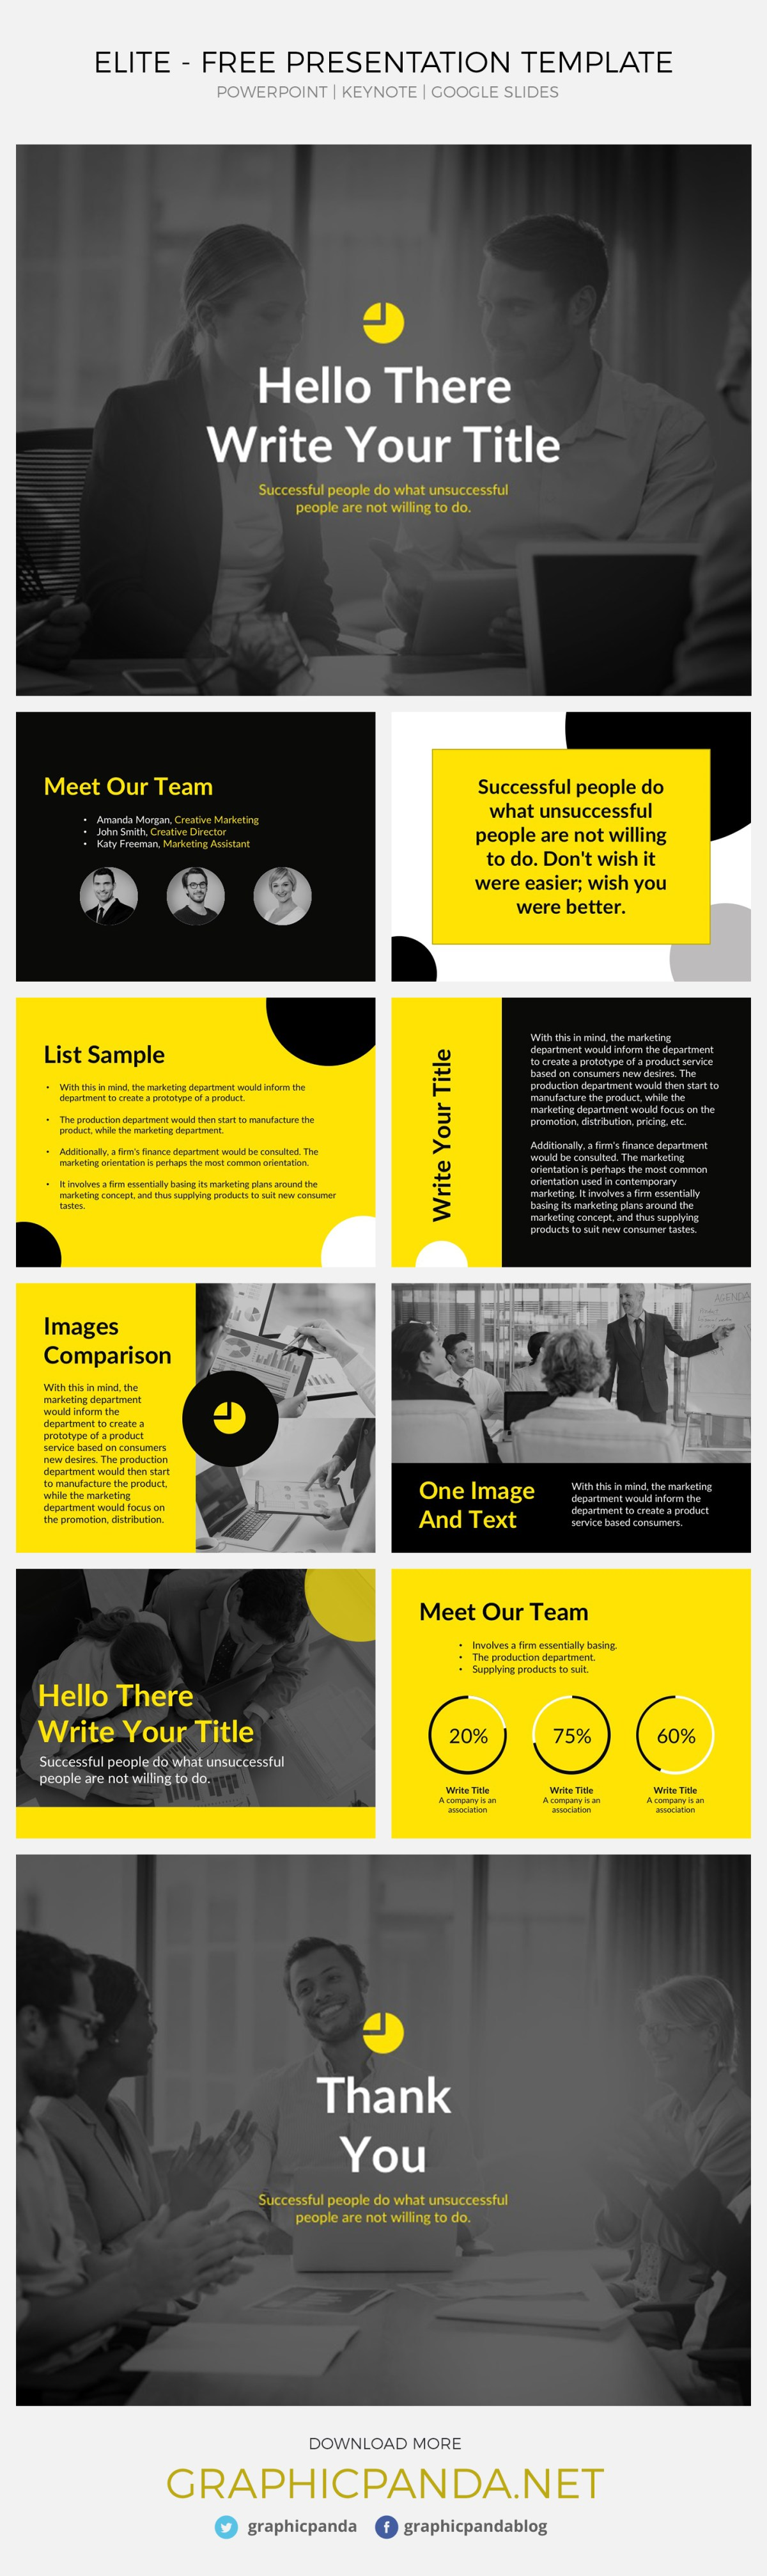 Whether you are a professional or beginner or whether you prefer to work on Microsoft PowerPoint, Apple Keynote or you prefer the security of the cloud-based service know as Google Slides, Elite Free Google slides template, powerpoint and keynote will help you to deliver an outstanding deck of business and professional ppt slides that will help you achieve the goal you are aiming for your company or small business or that class where you need to get an A.